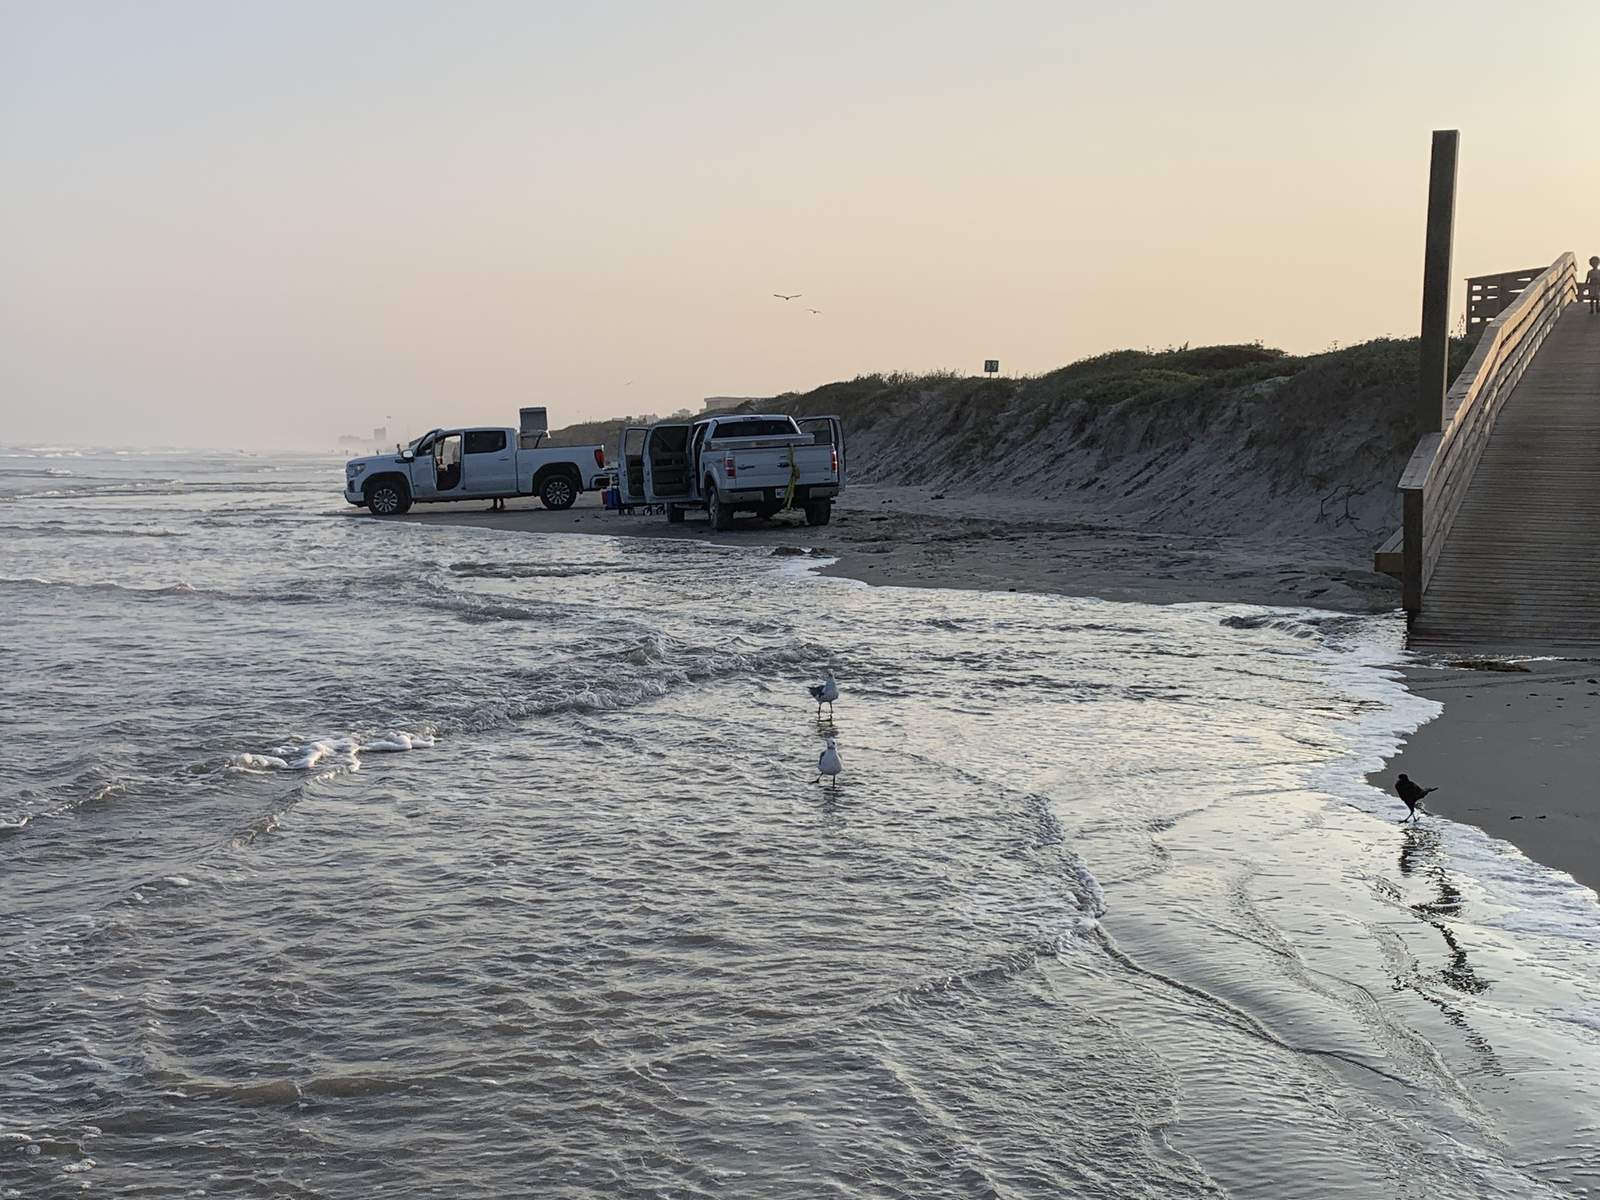 Port Aransas To Close Beaches Until Further Notice Due To Tropical Storm Beta Wind and wave weather forecast for port aransas beach, port aransas, united states, united states contains detailed information about local wind speed, direction, and gusts. port aransas to close beaches until